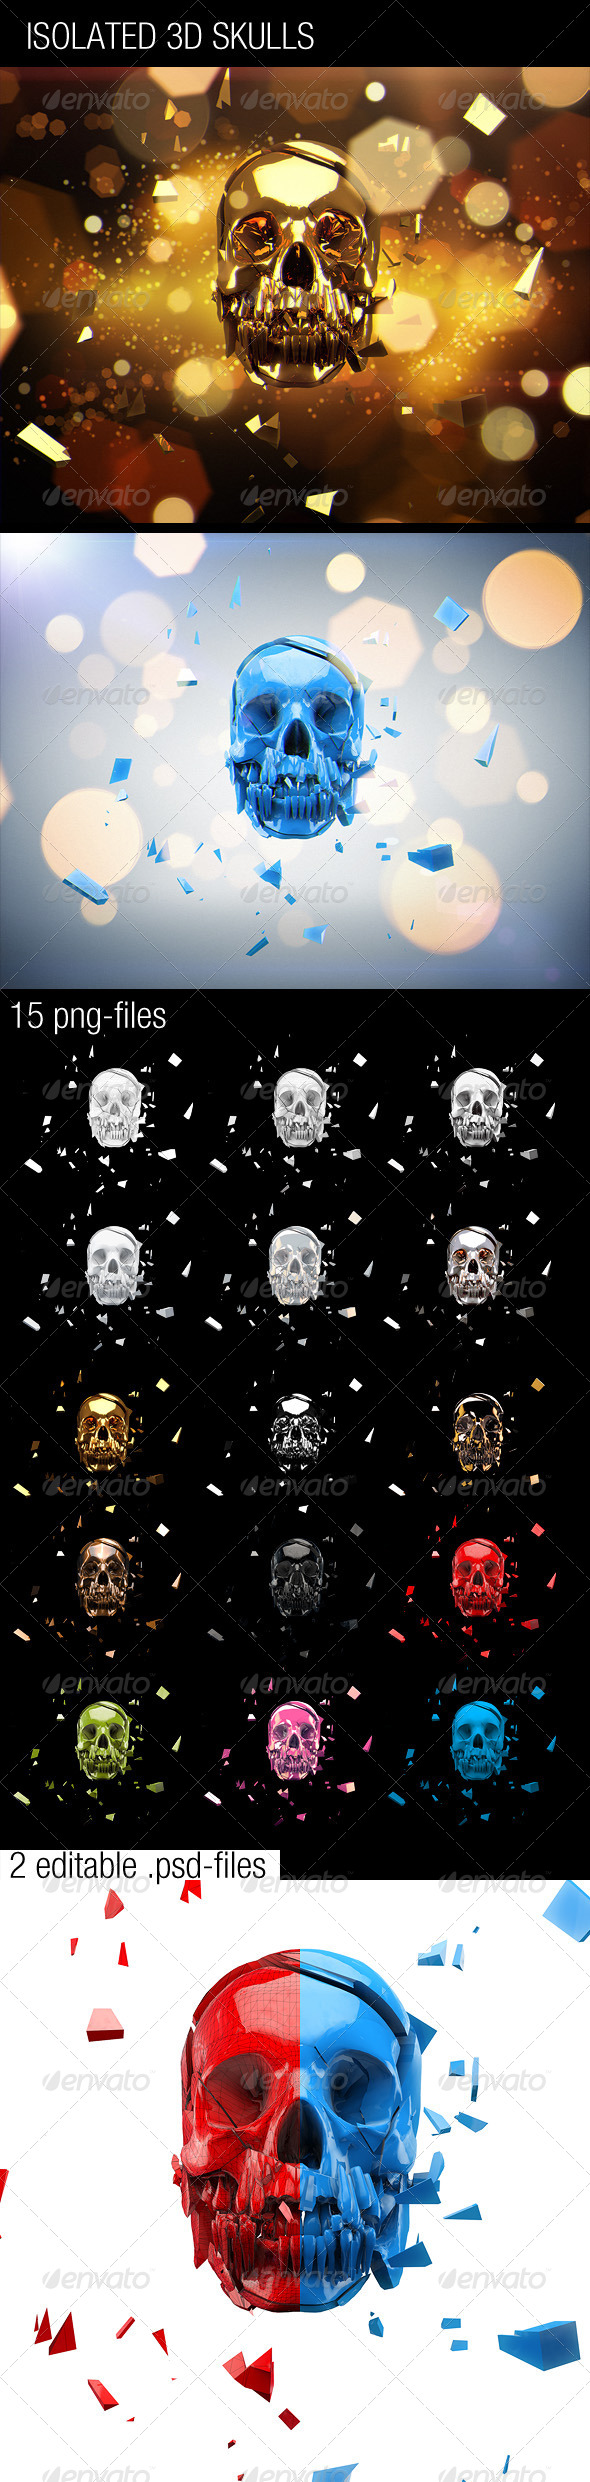 GraphicRiver 15 Isolated 3D Skulls 4355494